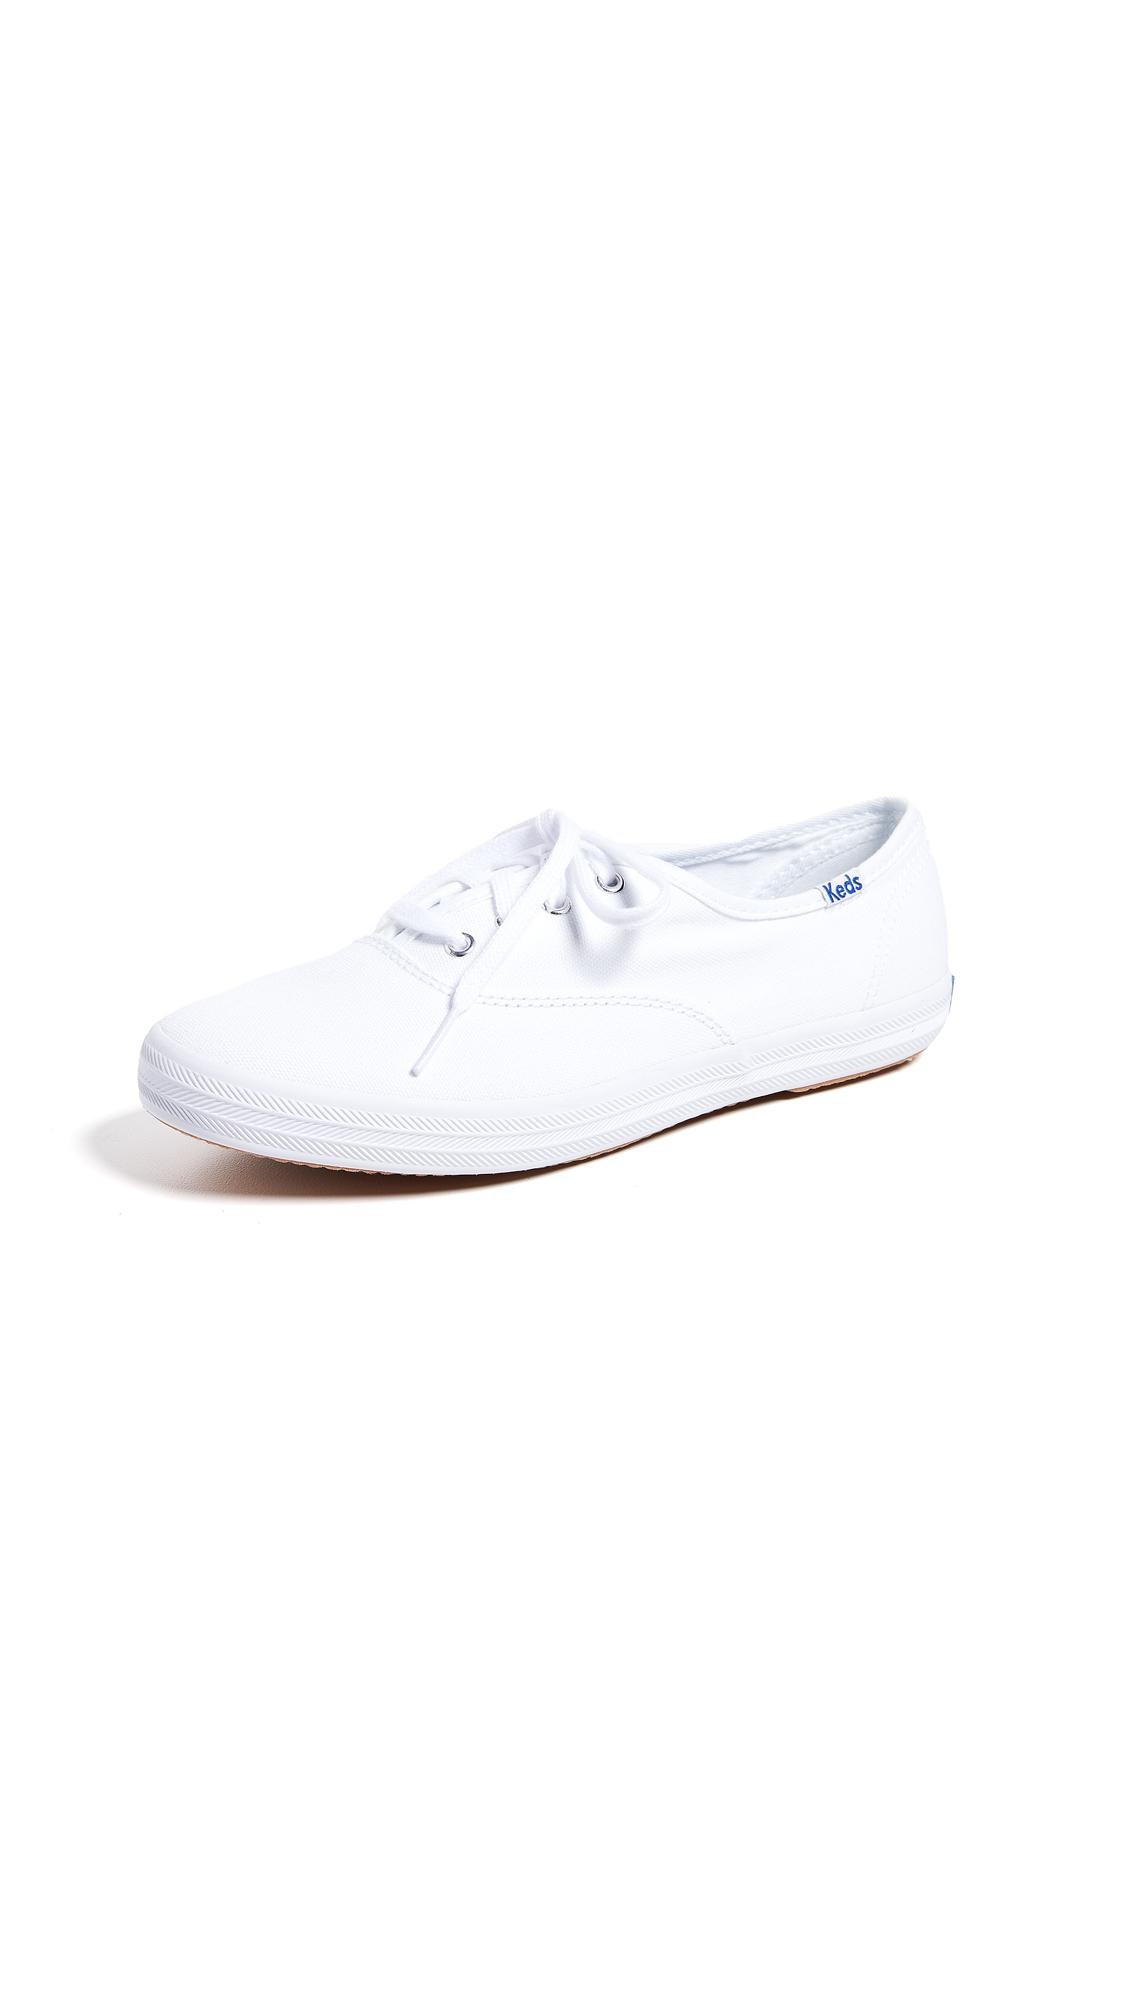 41bc40c65e9a Keds Champion Sneakers In White